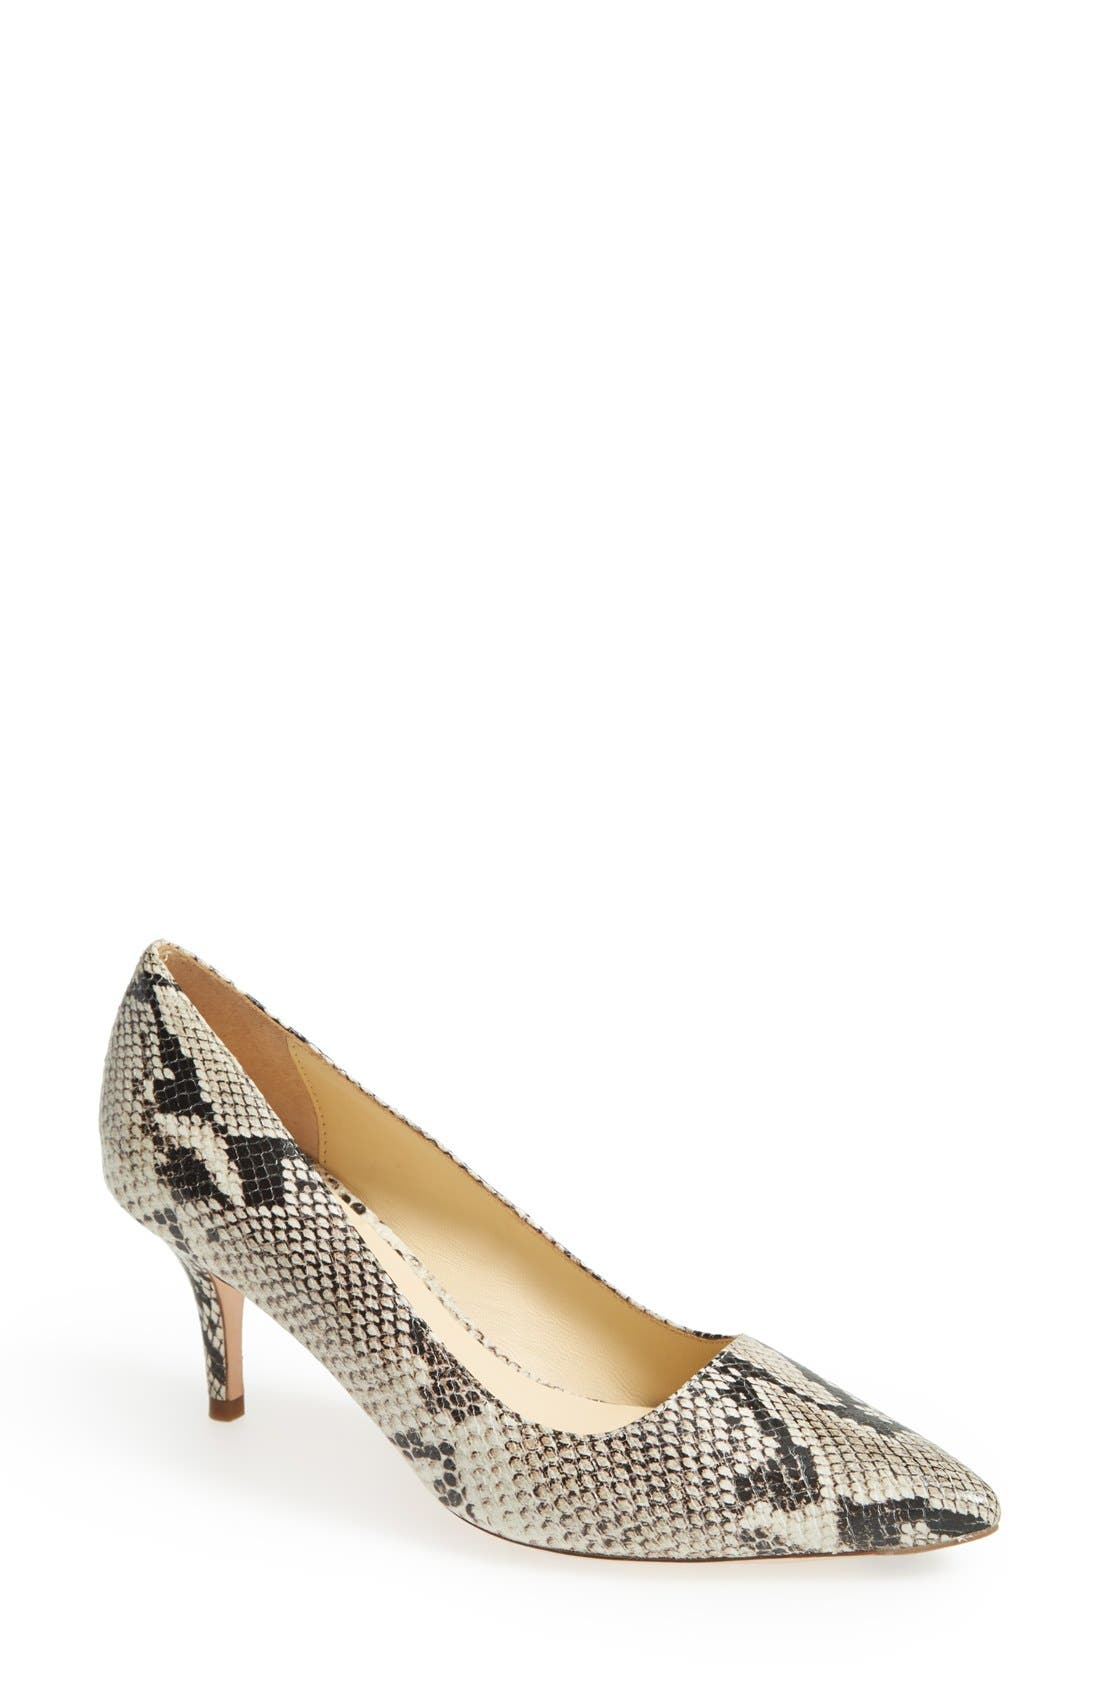 Alternate Image 1 Selected - Cole Haan 'Bradshaw' Pointy Toe Pump (Women)